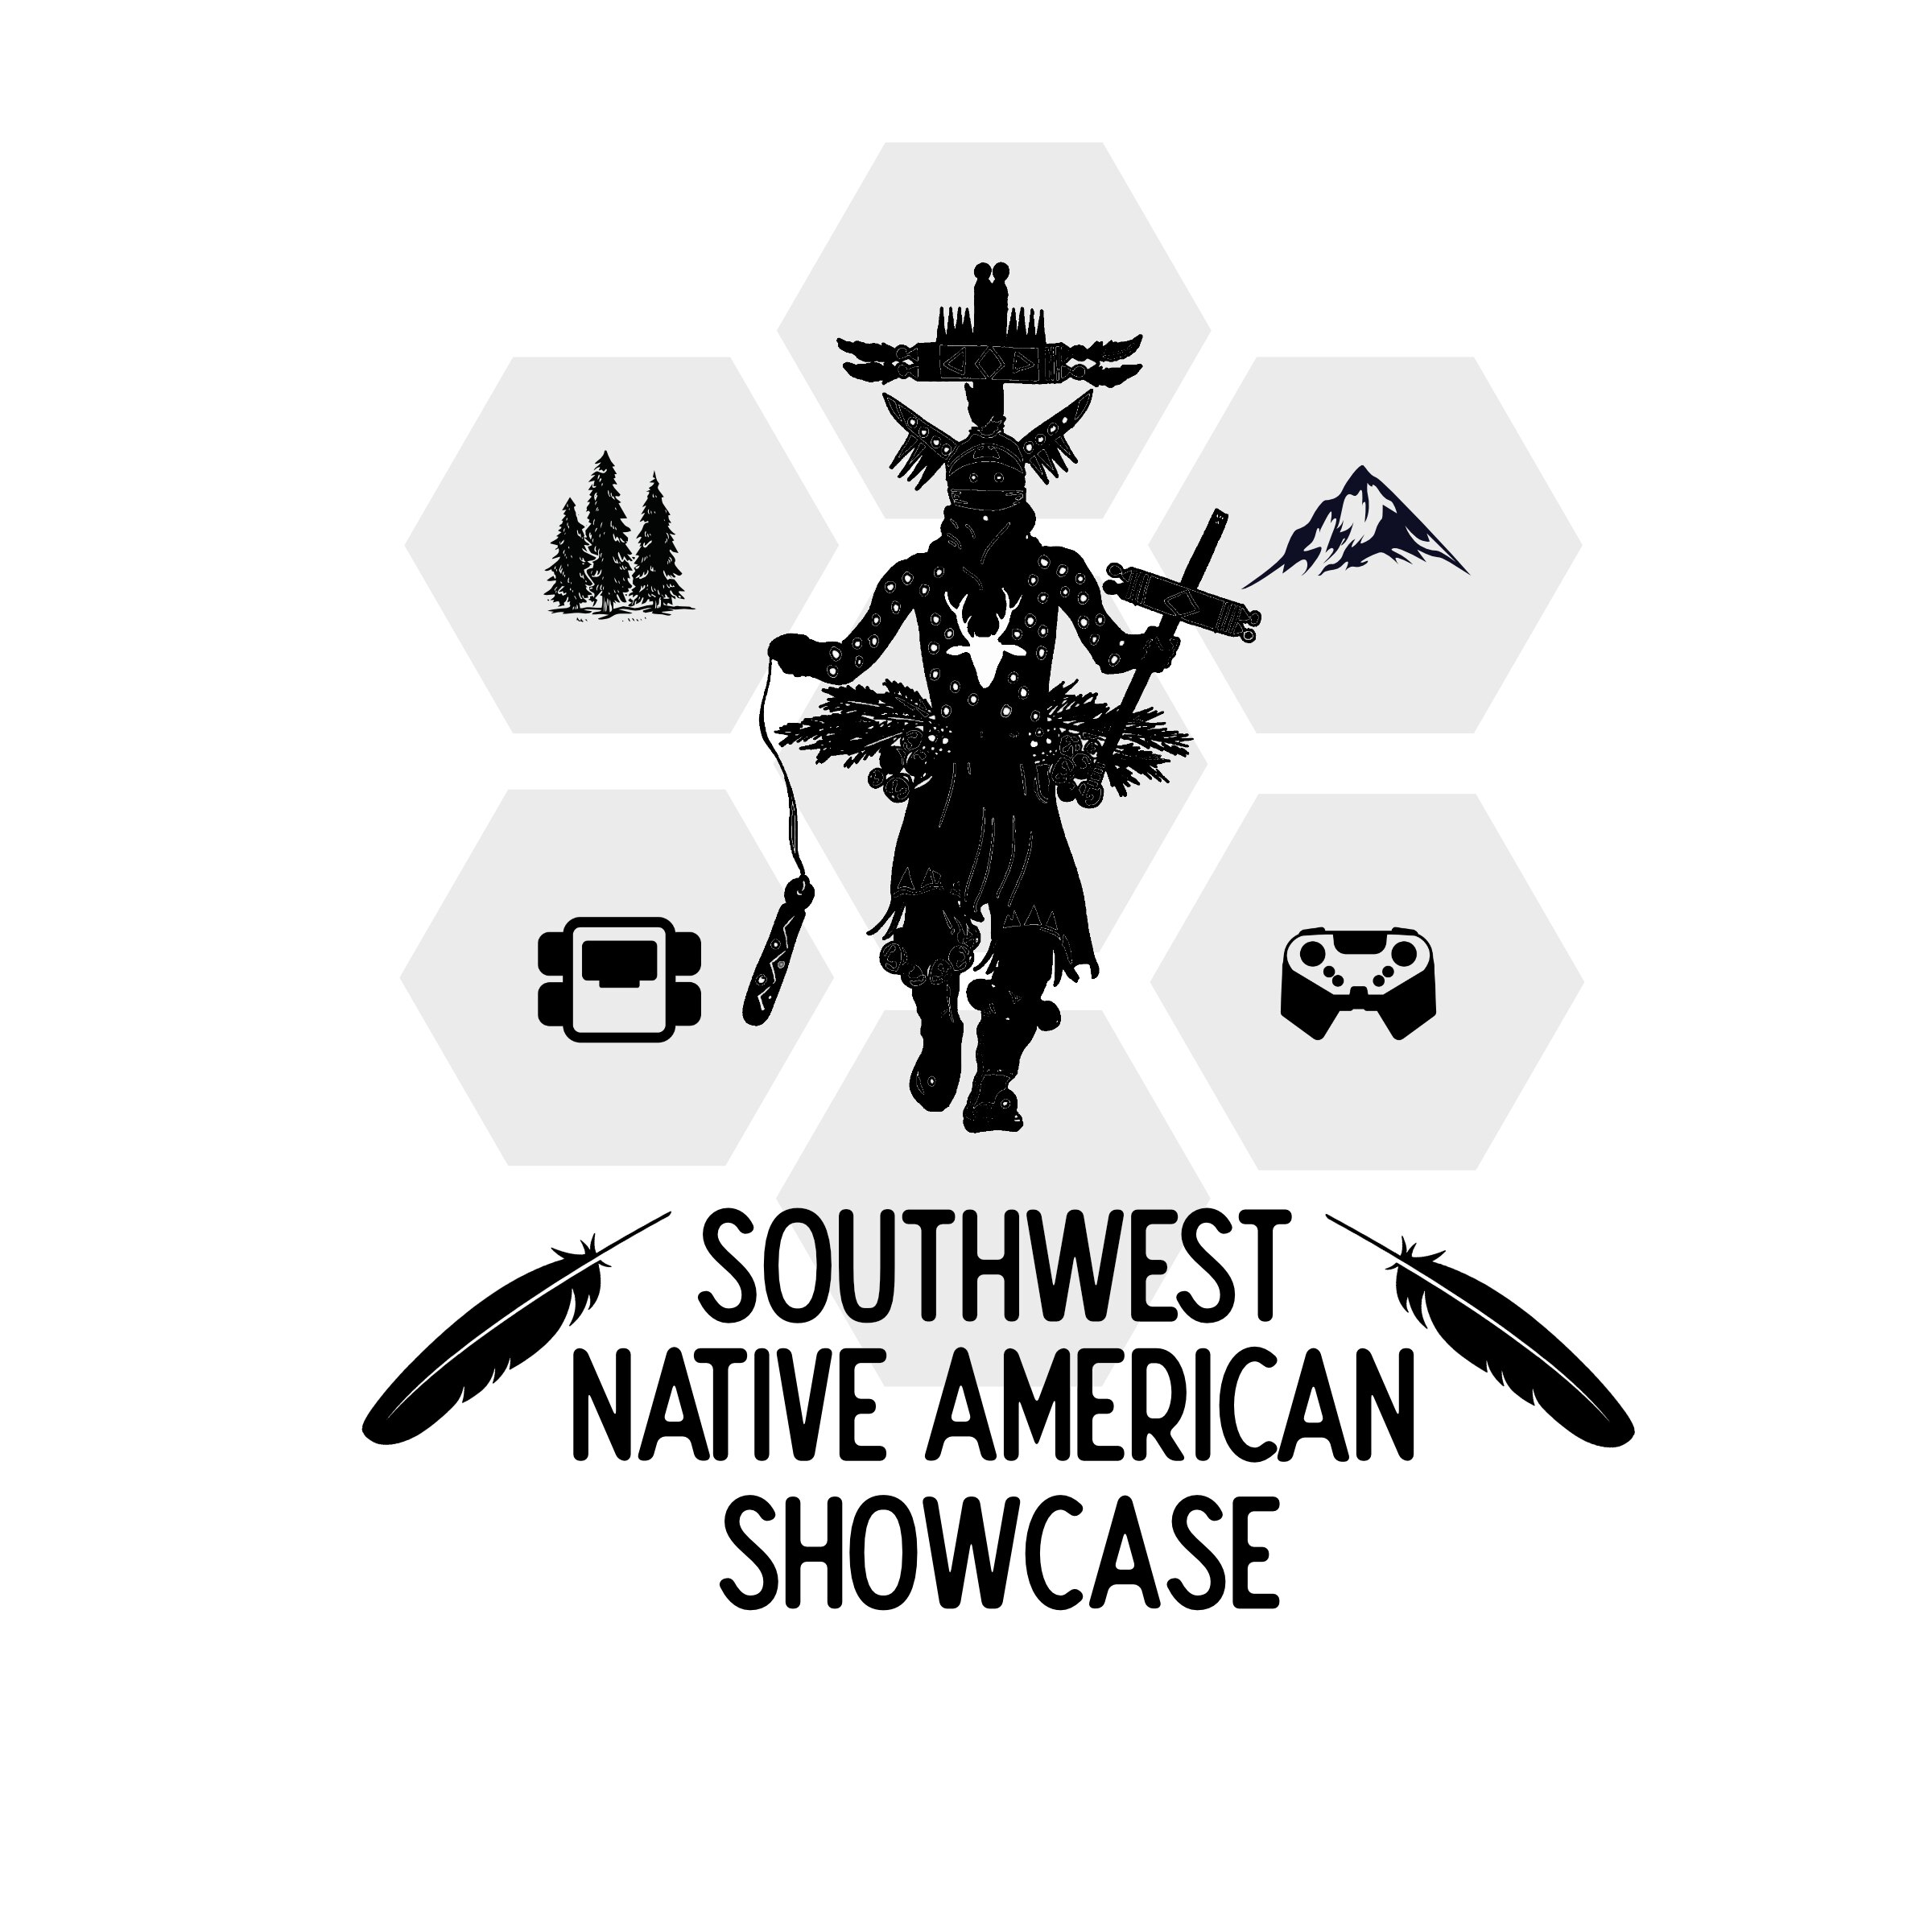 VIQC, White Mountain Apache Southwest Native American Showcase Event, Remote Skills-Only, Blended ES & MS, Remote Judging